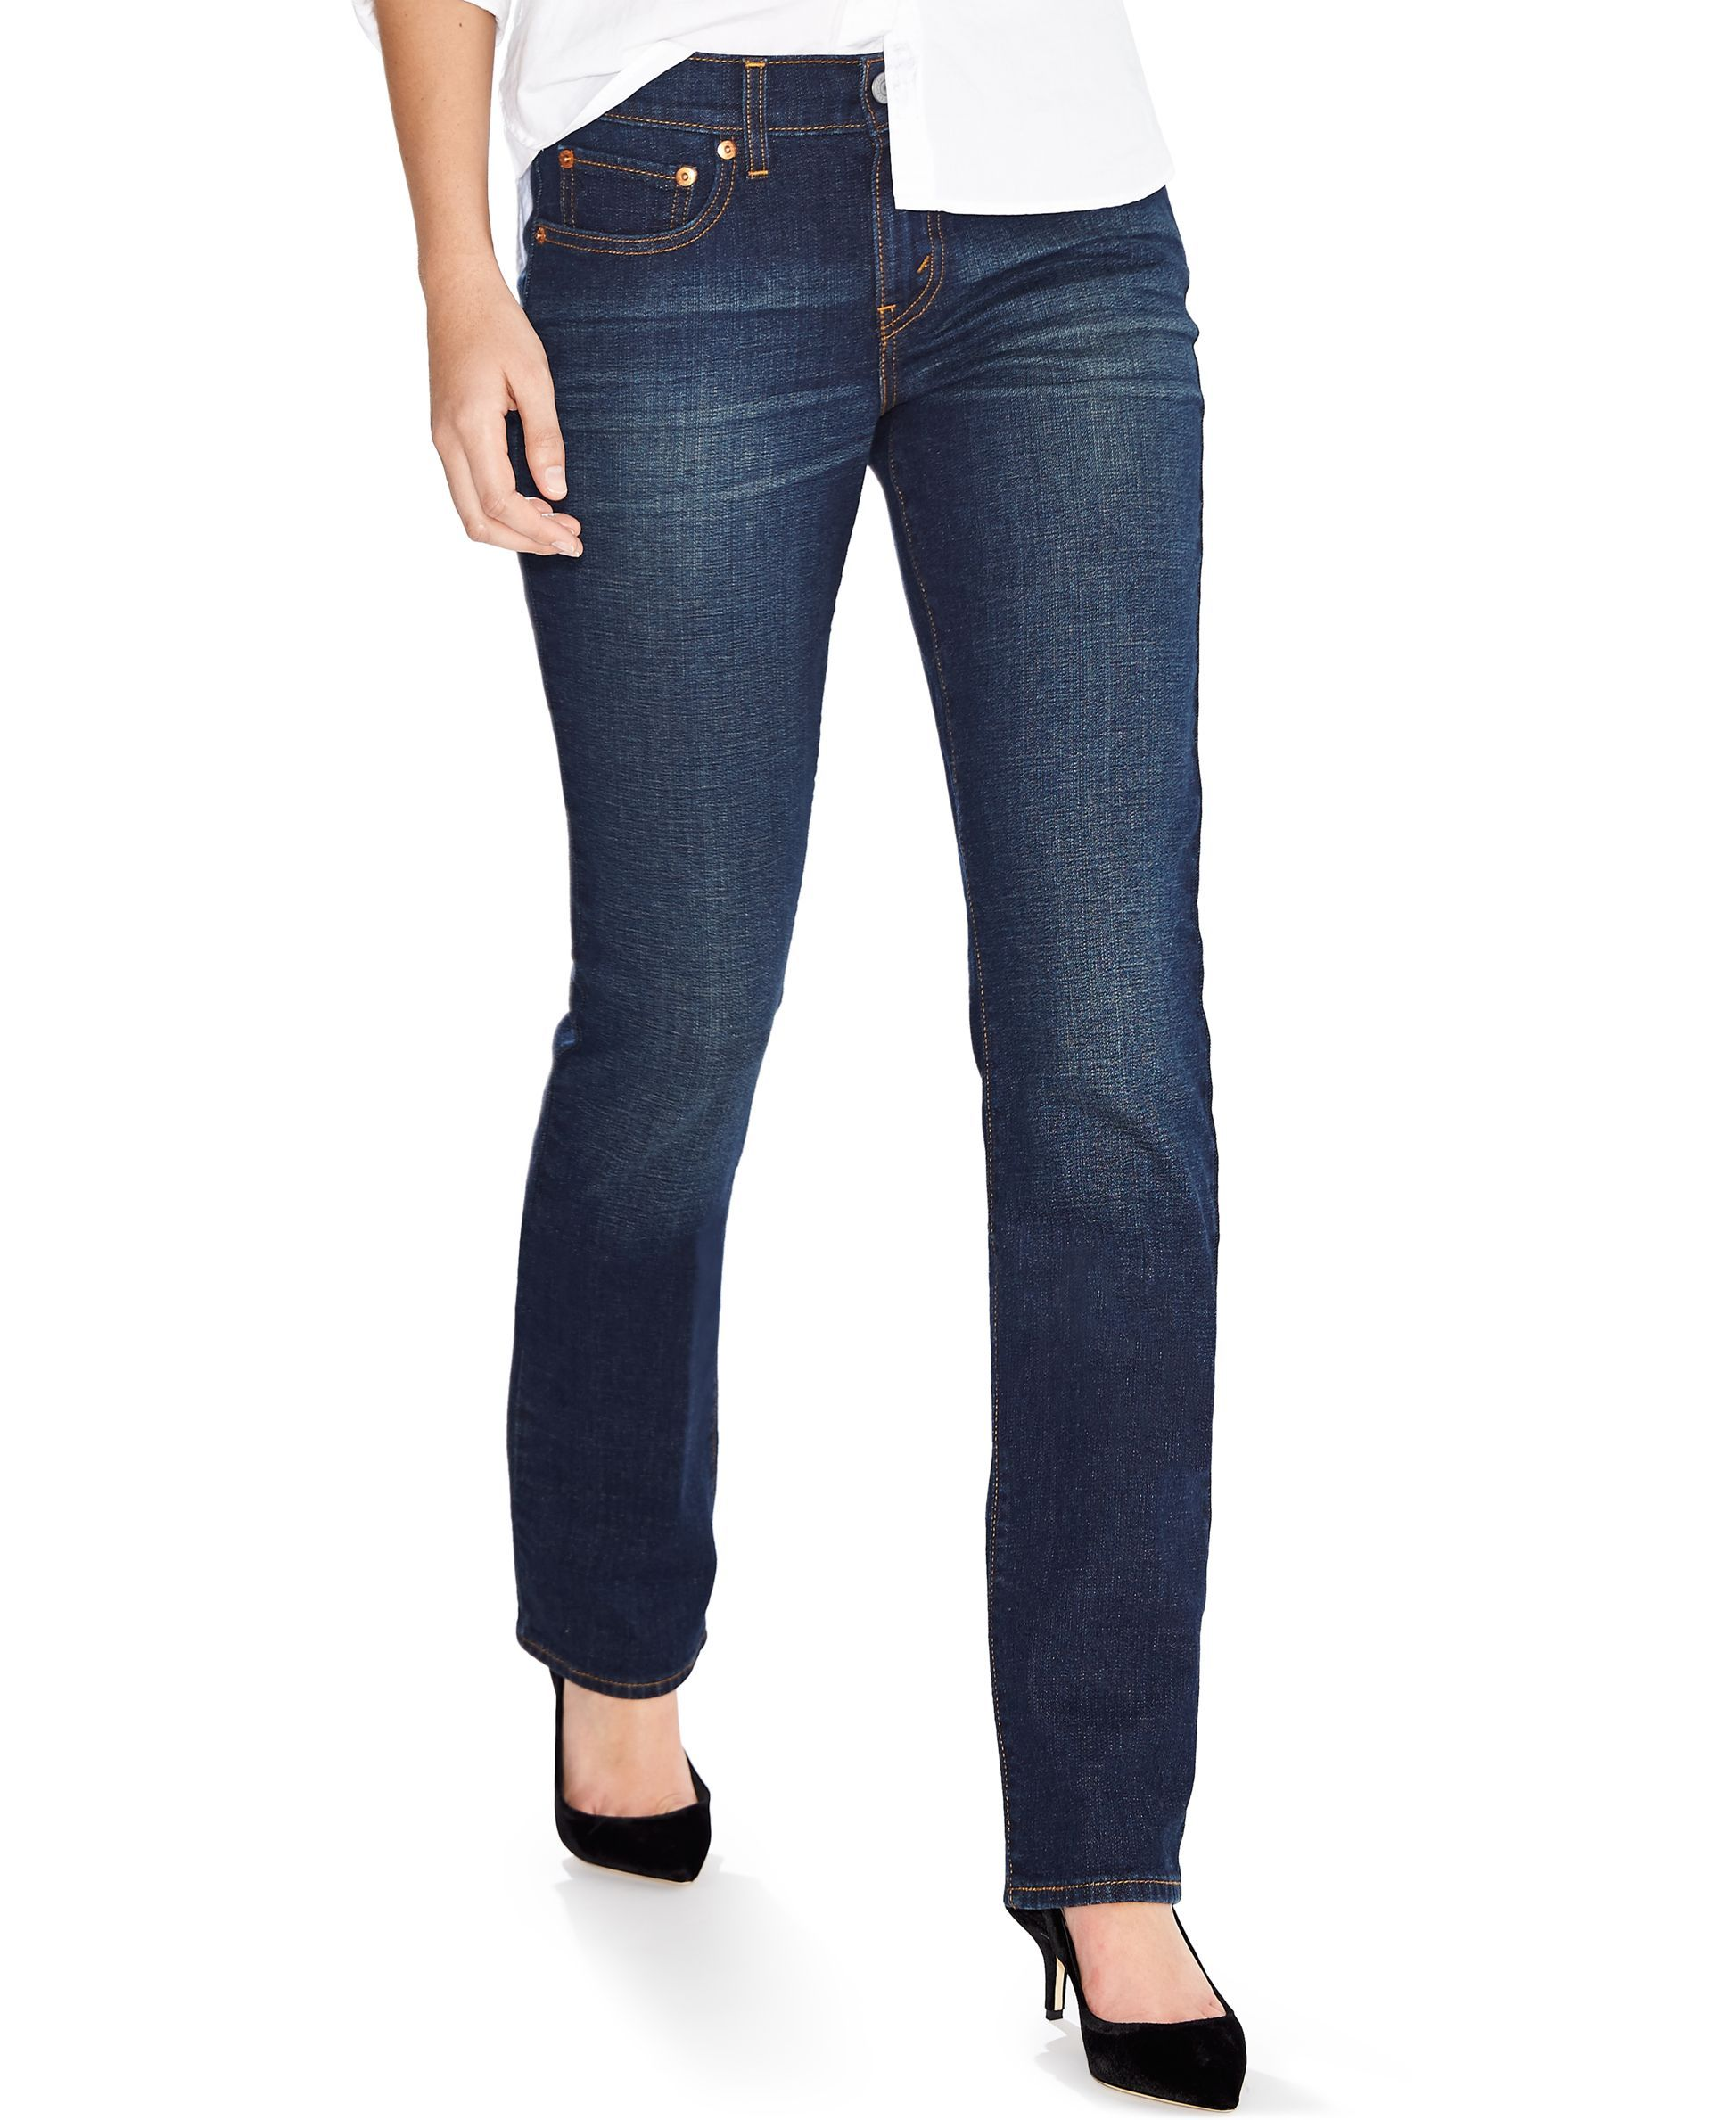 95f14e57851 Levi's 414 Relaxed-Fit Straight-Leg Jeans, Lost Creek Wash ...